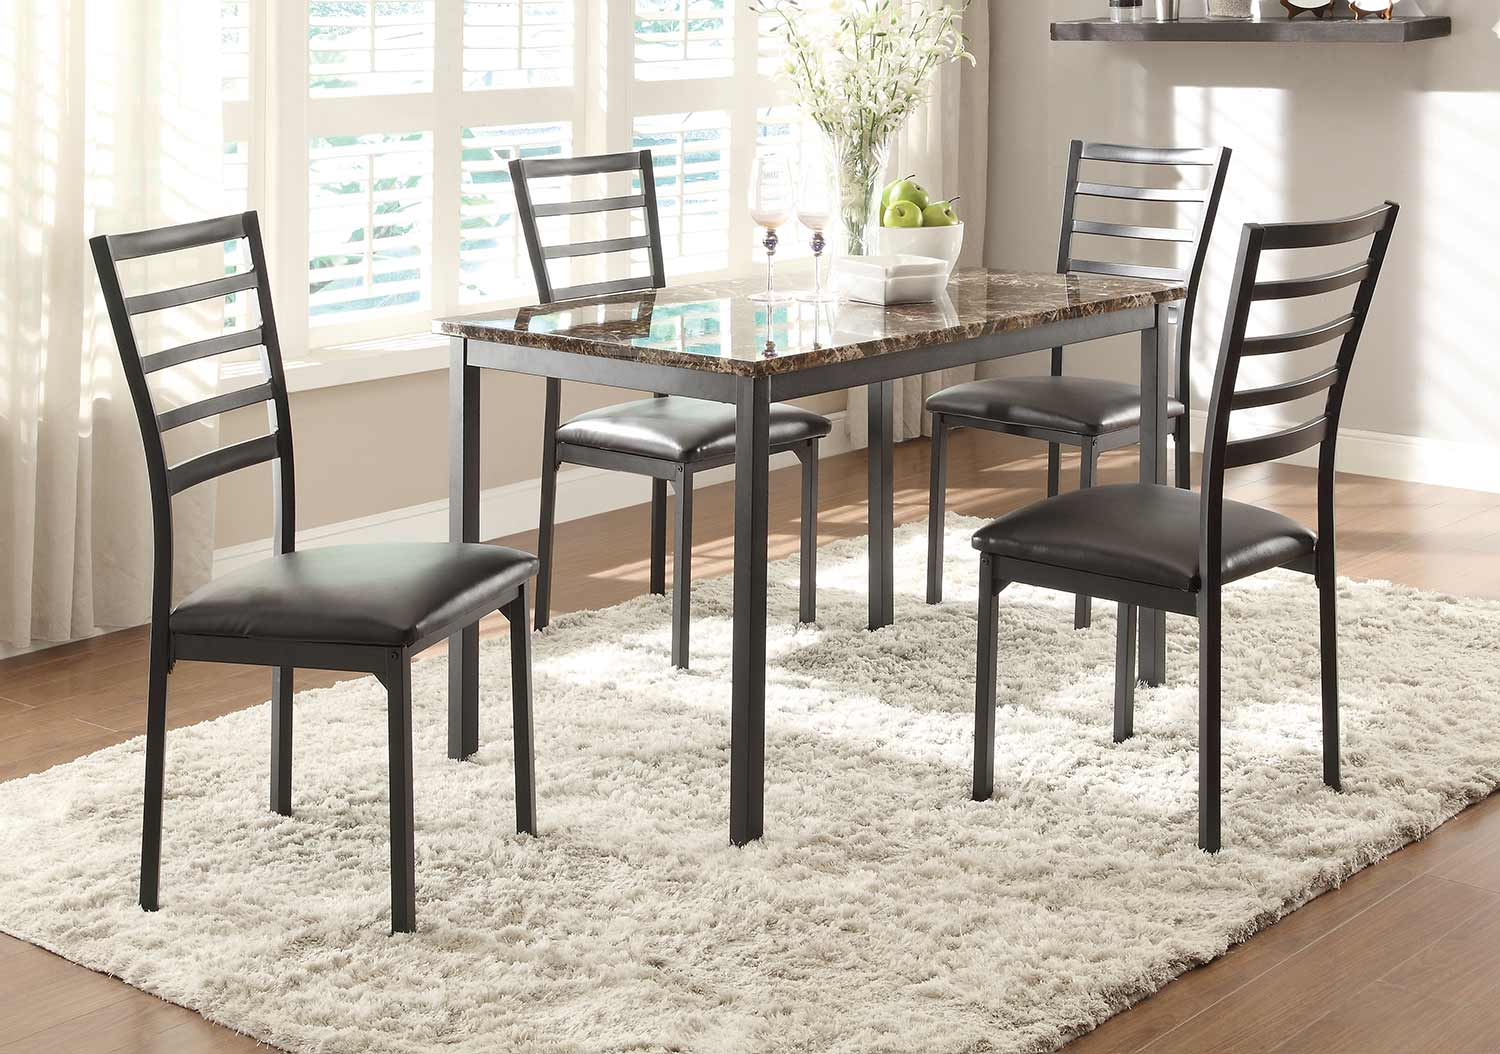 Homelegance Flannery Dining Set   Black Metal